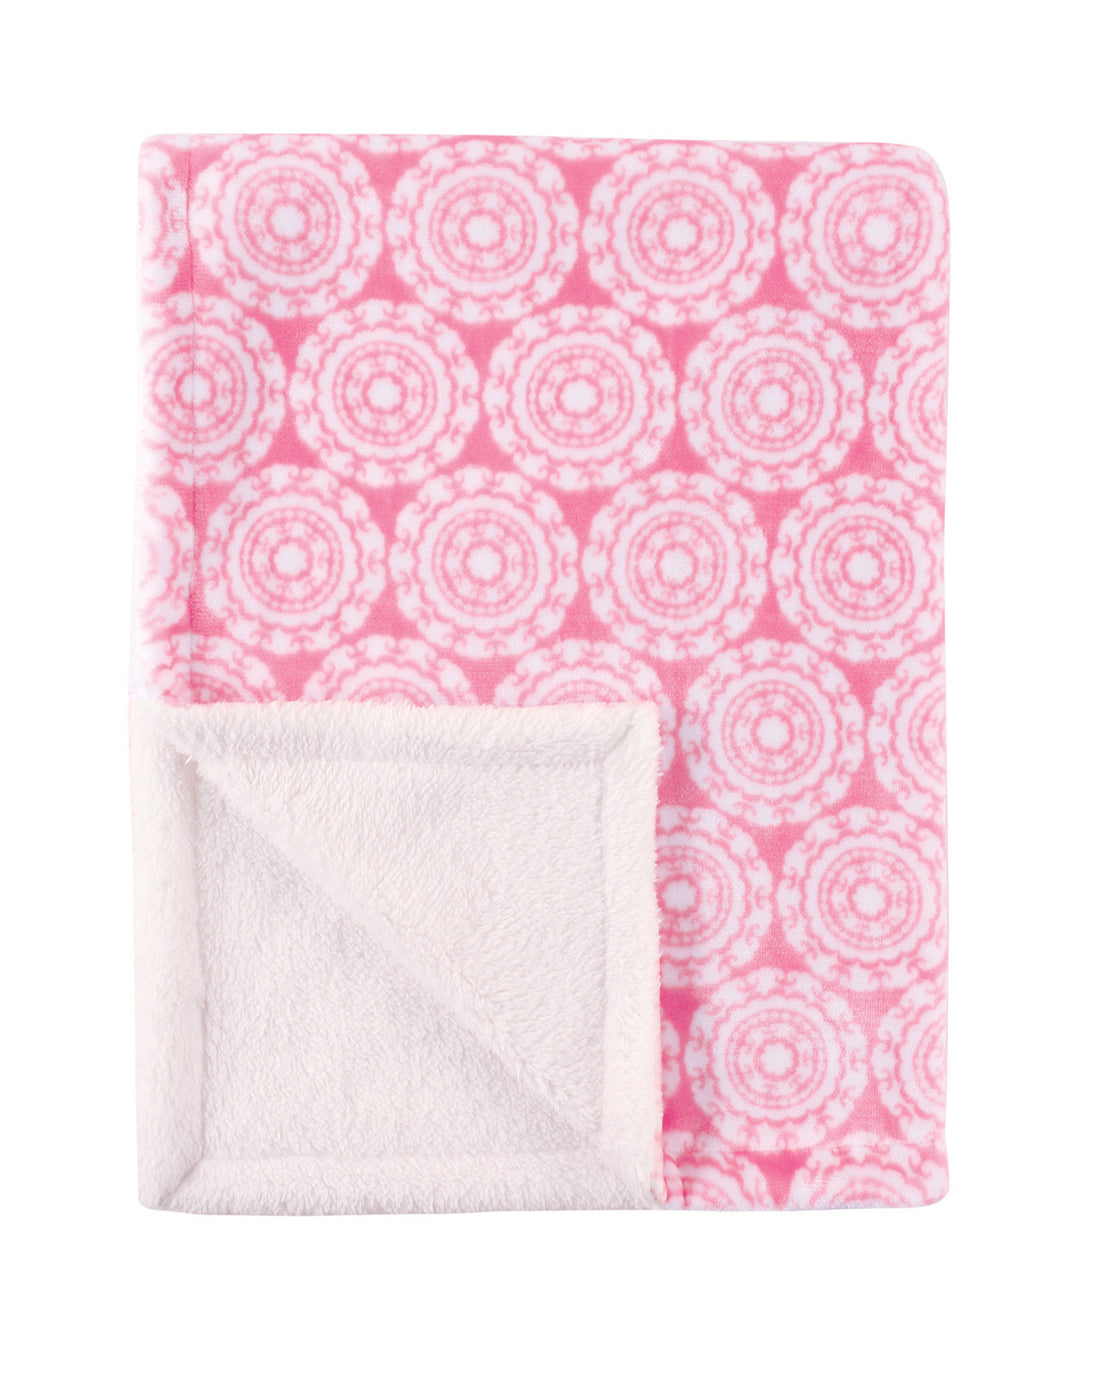 Pink Circle Patterned Double Layered Blanket